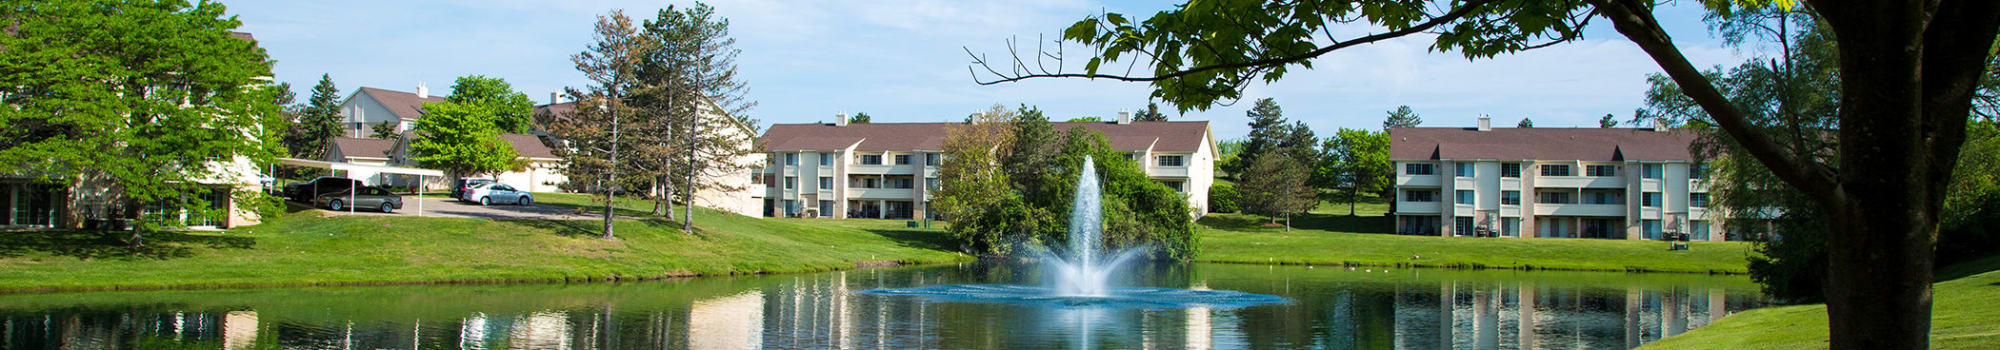 Amenities at Aldingbrooke in West Bloomfield, Michigan